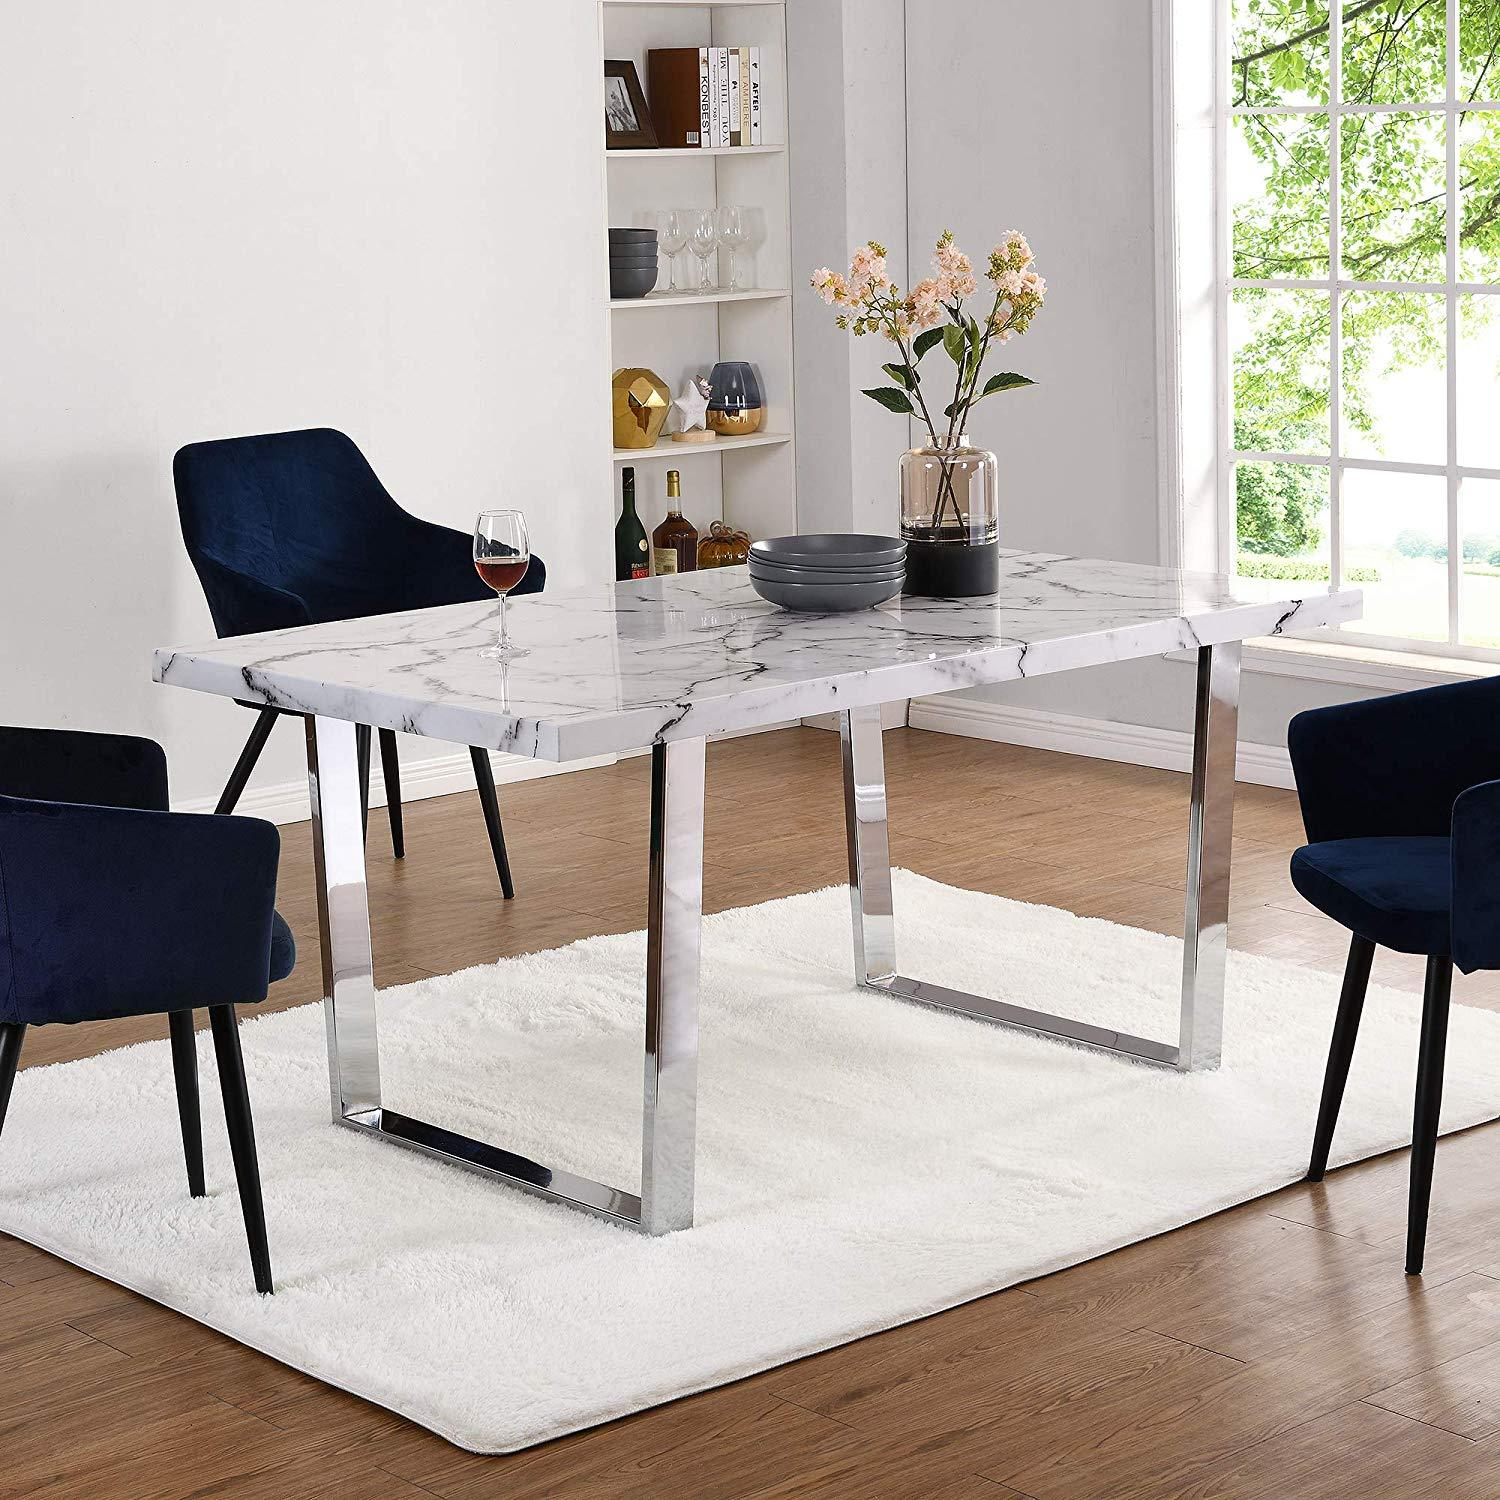 Biasca 6 Seater High Gloss Marble Effect Dining Table With Silver Chrome Legs White Shop Designer Home Furnishings